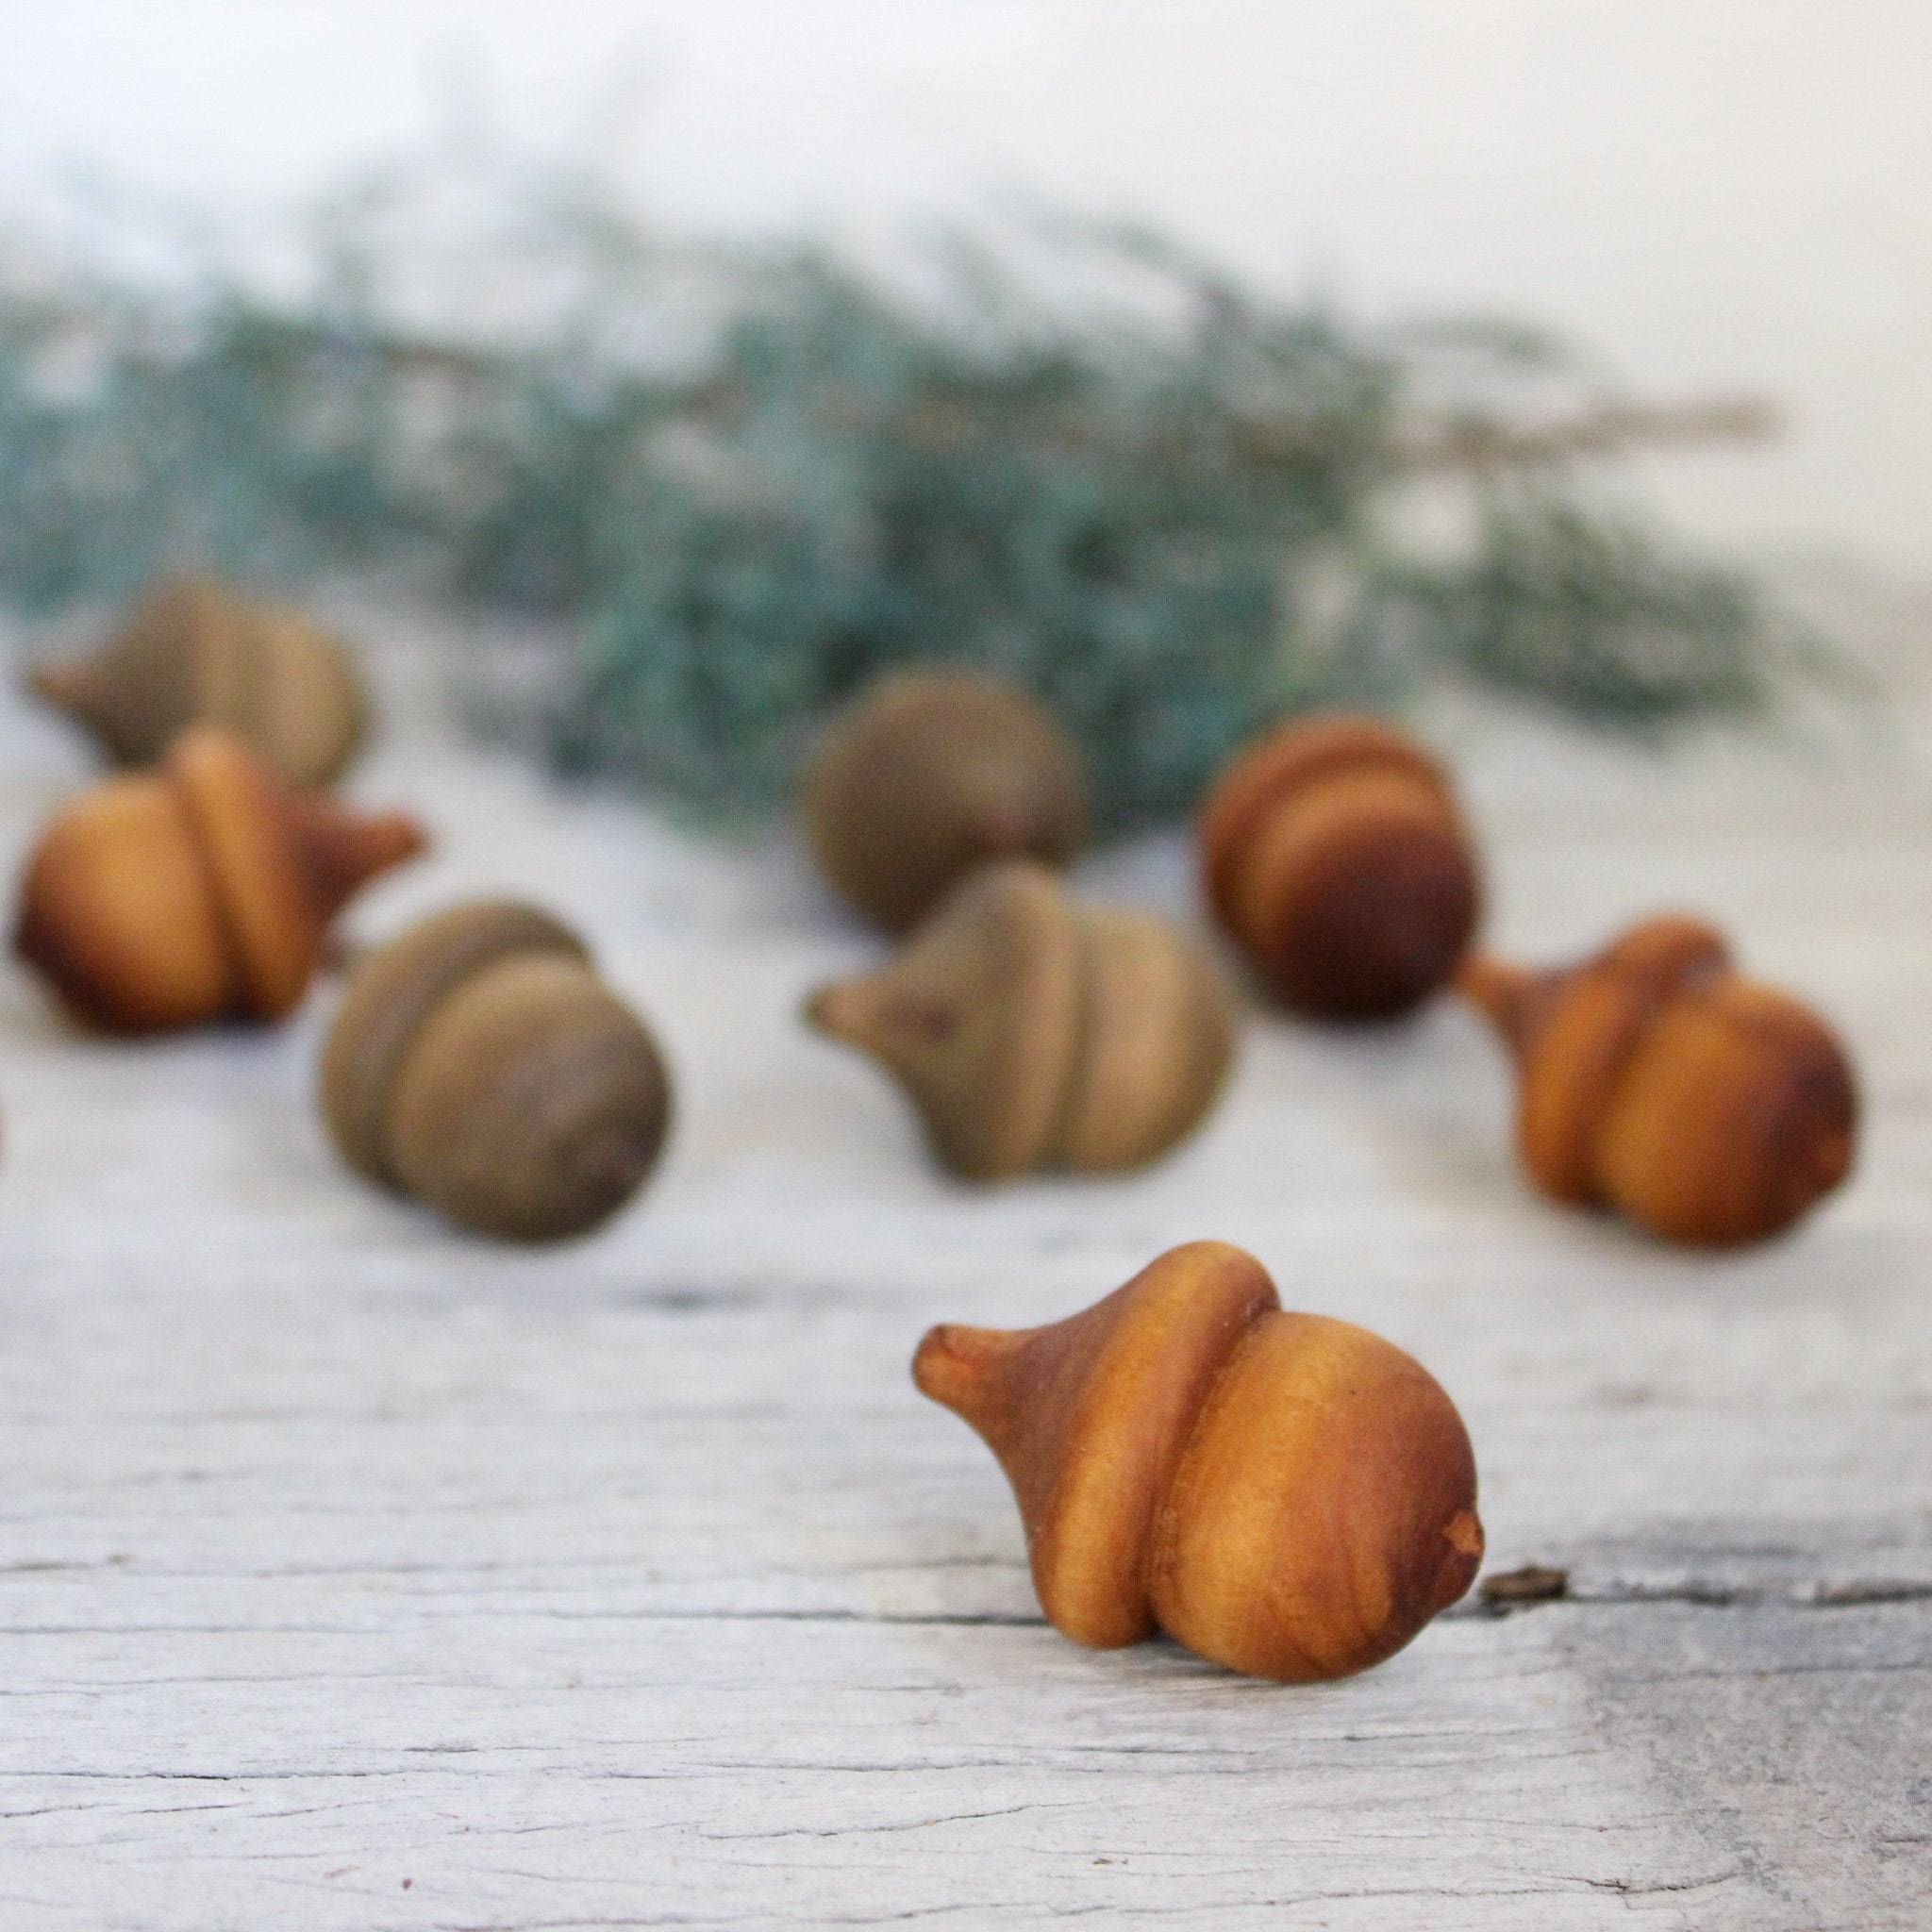 Little wooden acorns plant-dyed by hand at Tribe Castlemaine